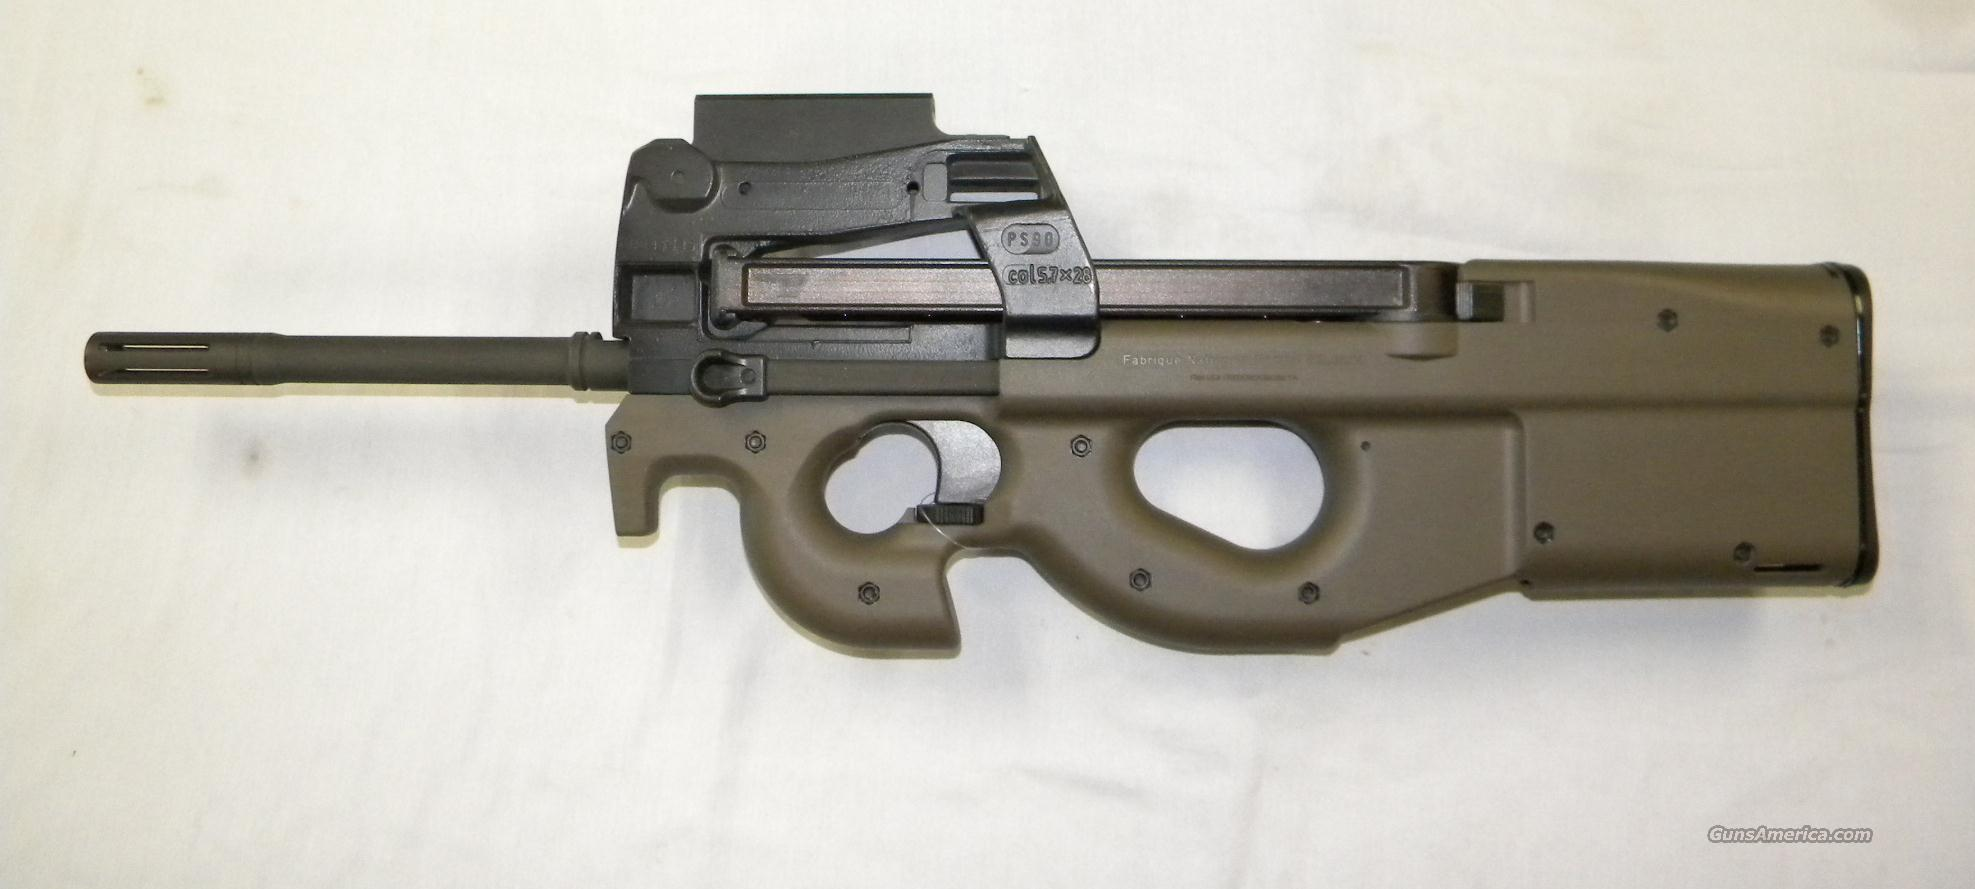 Ps90 For Sale >> FNH PS90 with FN optics and green stock for sale